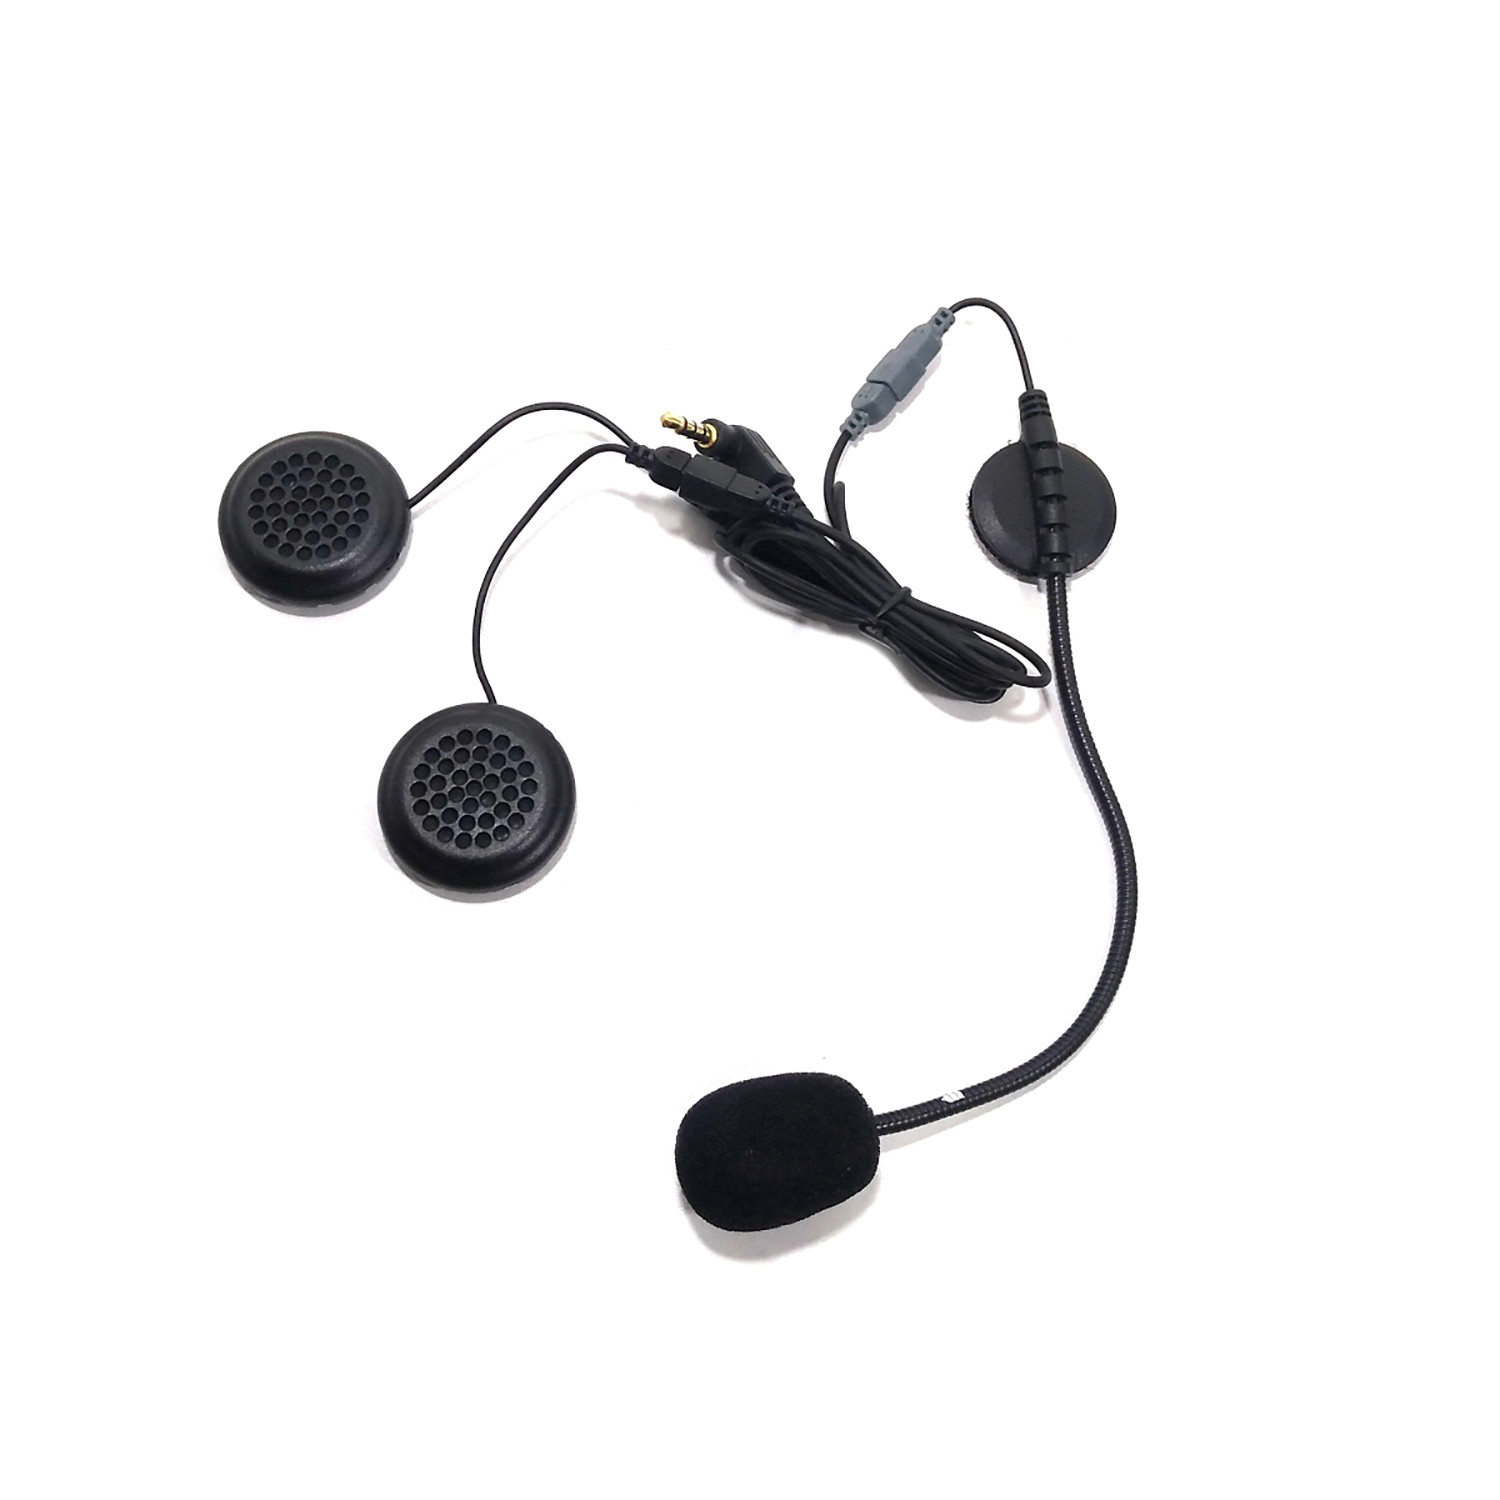 Kit Auriculares y Microfono Intercomunicador Ejeas E6